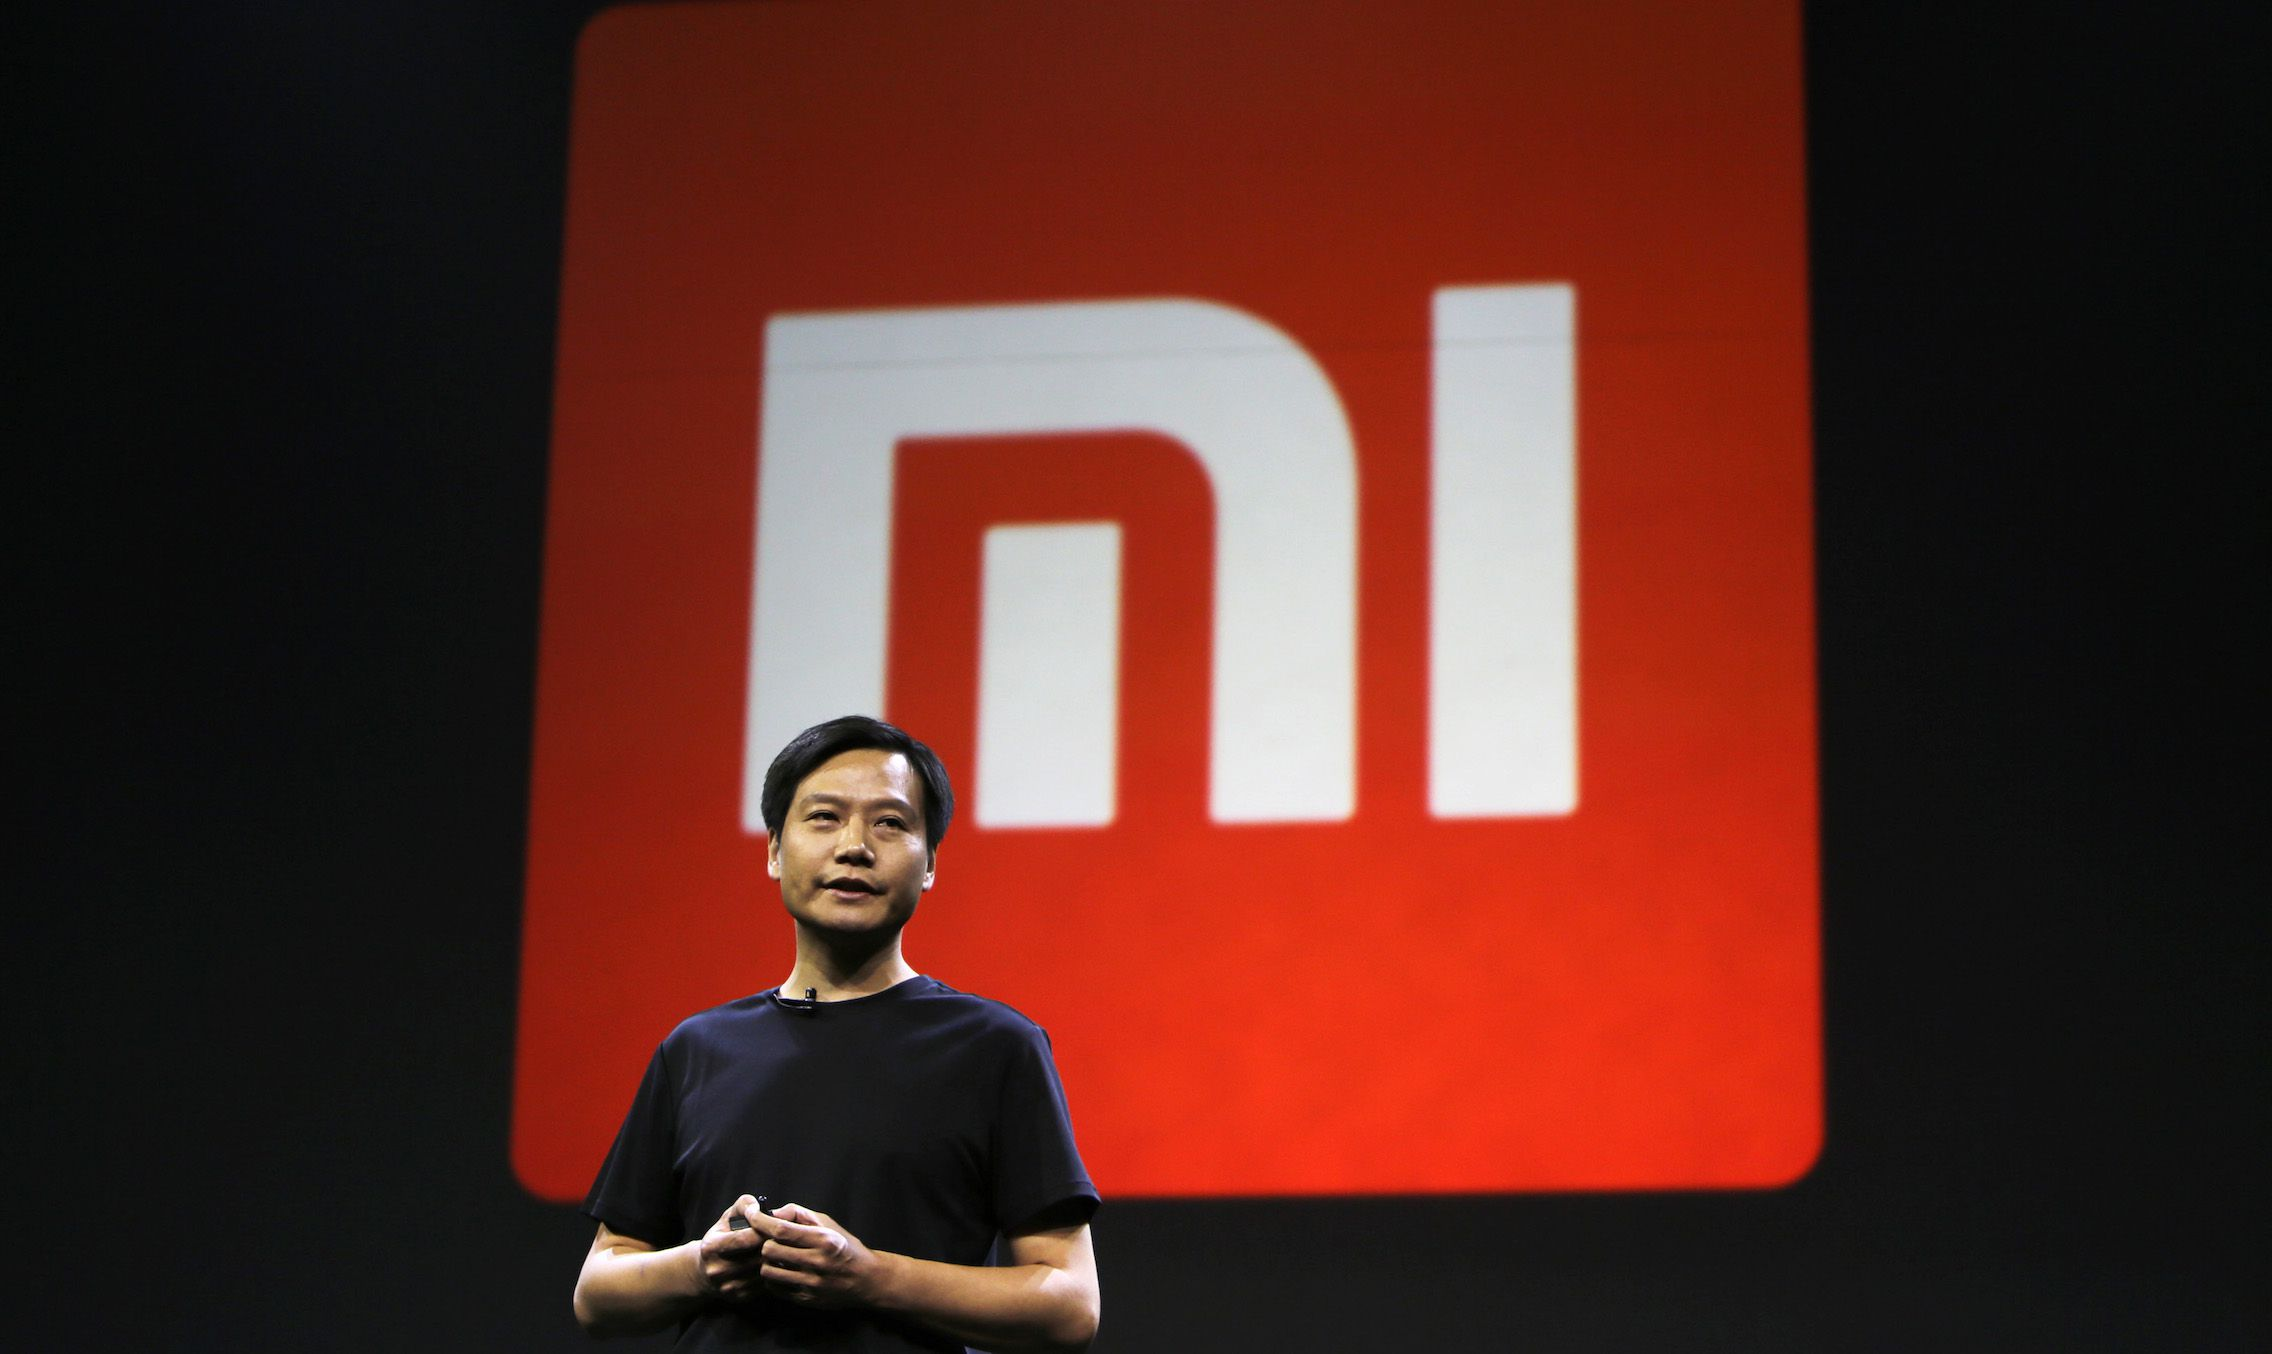 Lei Jun, founder and CEO of China's mobile company Xiaomi, speaks at a launch ceremony of Xiaomi Phone 4, in Beijing, July 22, 2014. China's Xiaomi unveiled on Tuesday its new flagship Mi 4 smartphone, aimed squarely at the premium handset market dominated by Apple Inc and Samsung Electronics Co Ltd. REUTERS/Jason Lee (CHINA - Tags: BUSINESS TELECOMS SCIENCE TECHNOLOGY LOGO) - RTR3ZN52